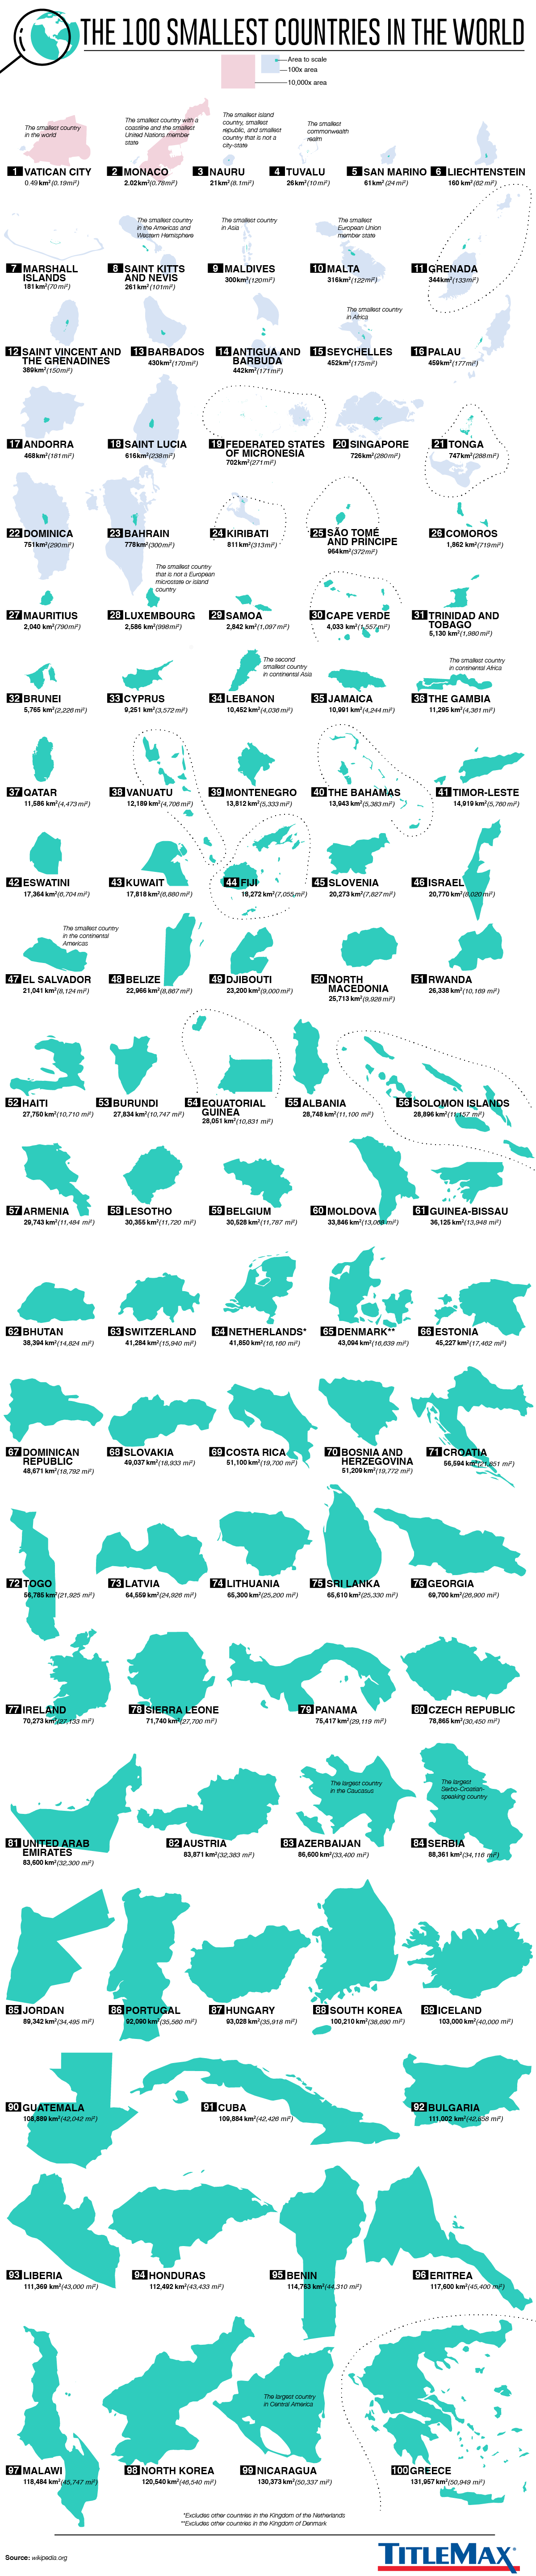 The World's 100 Smallest Countries #infographic